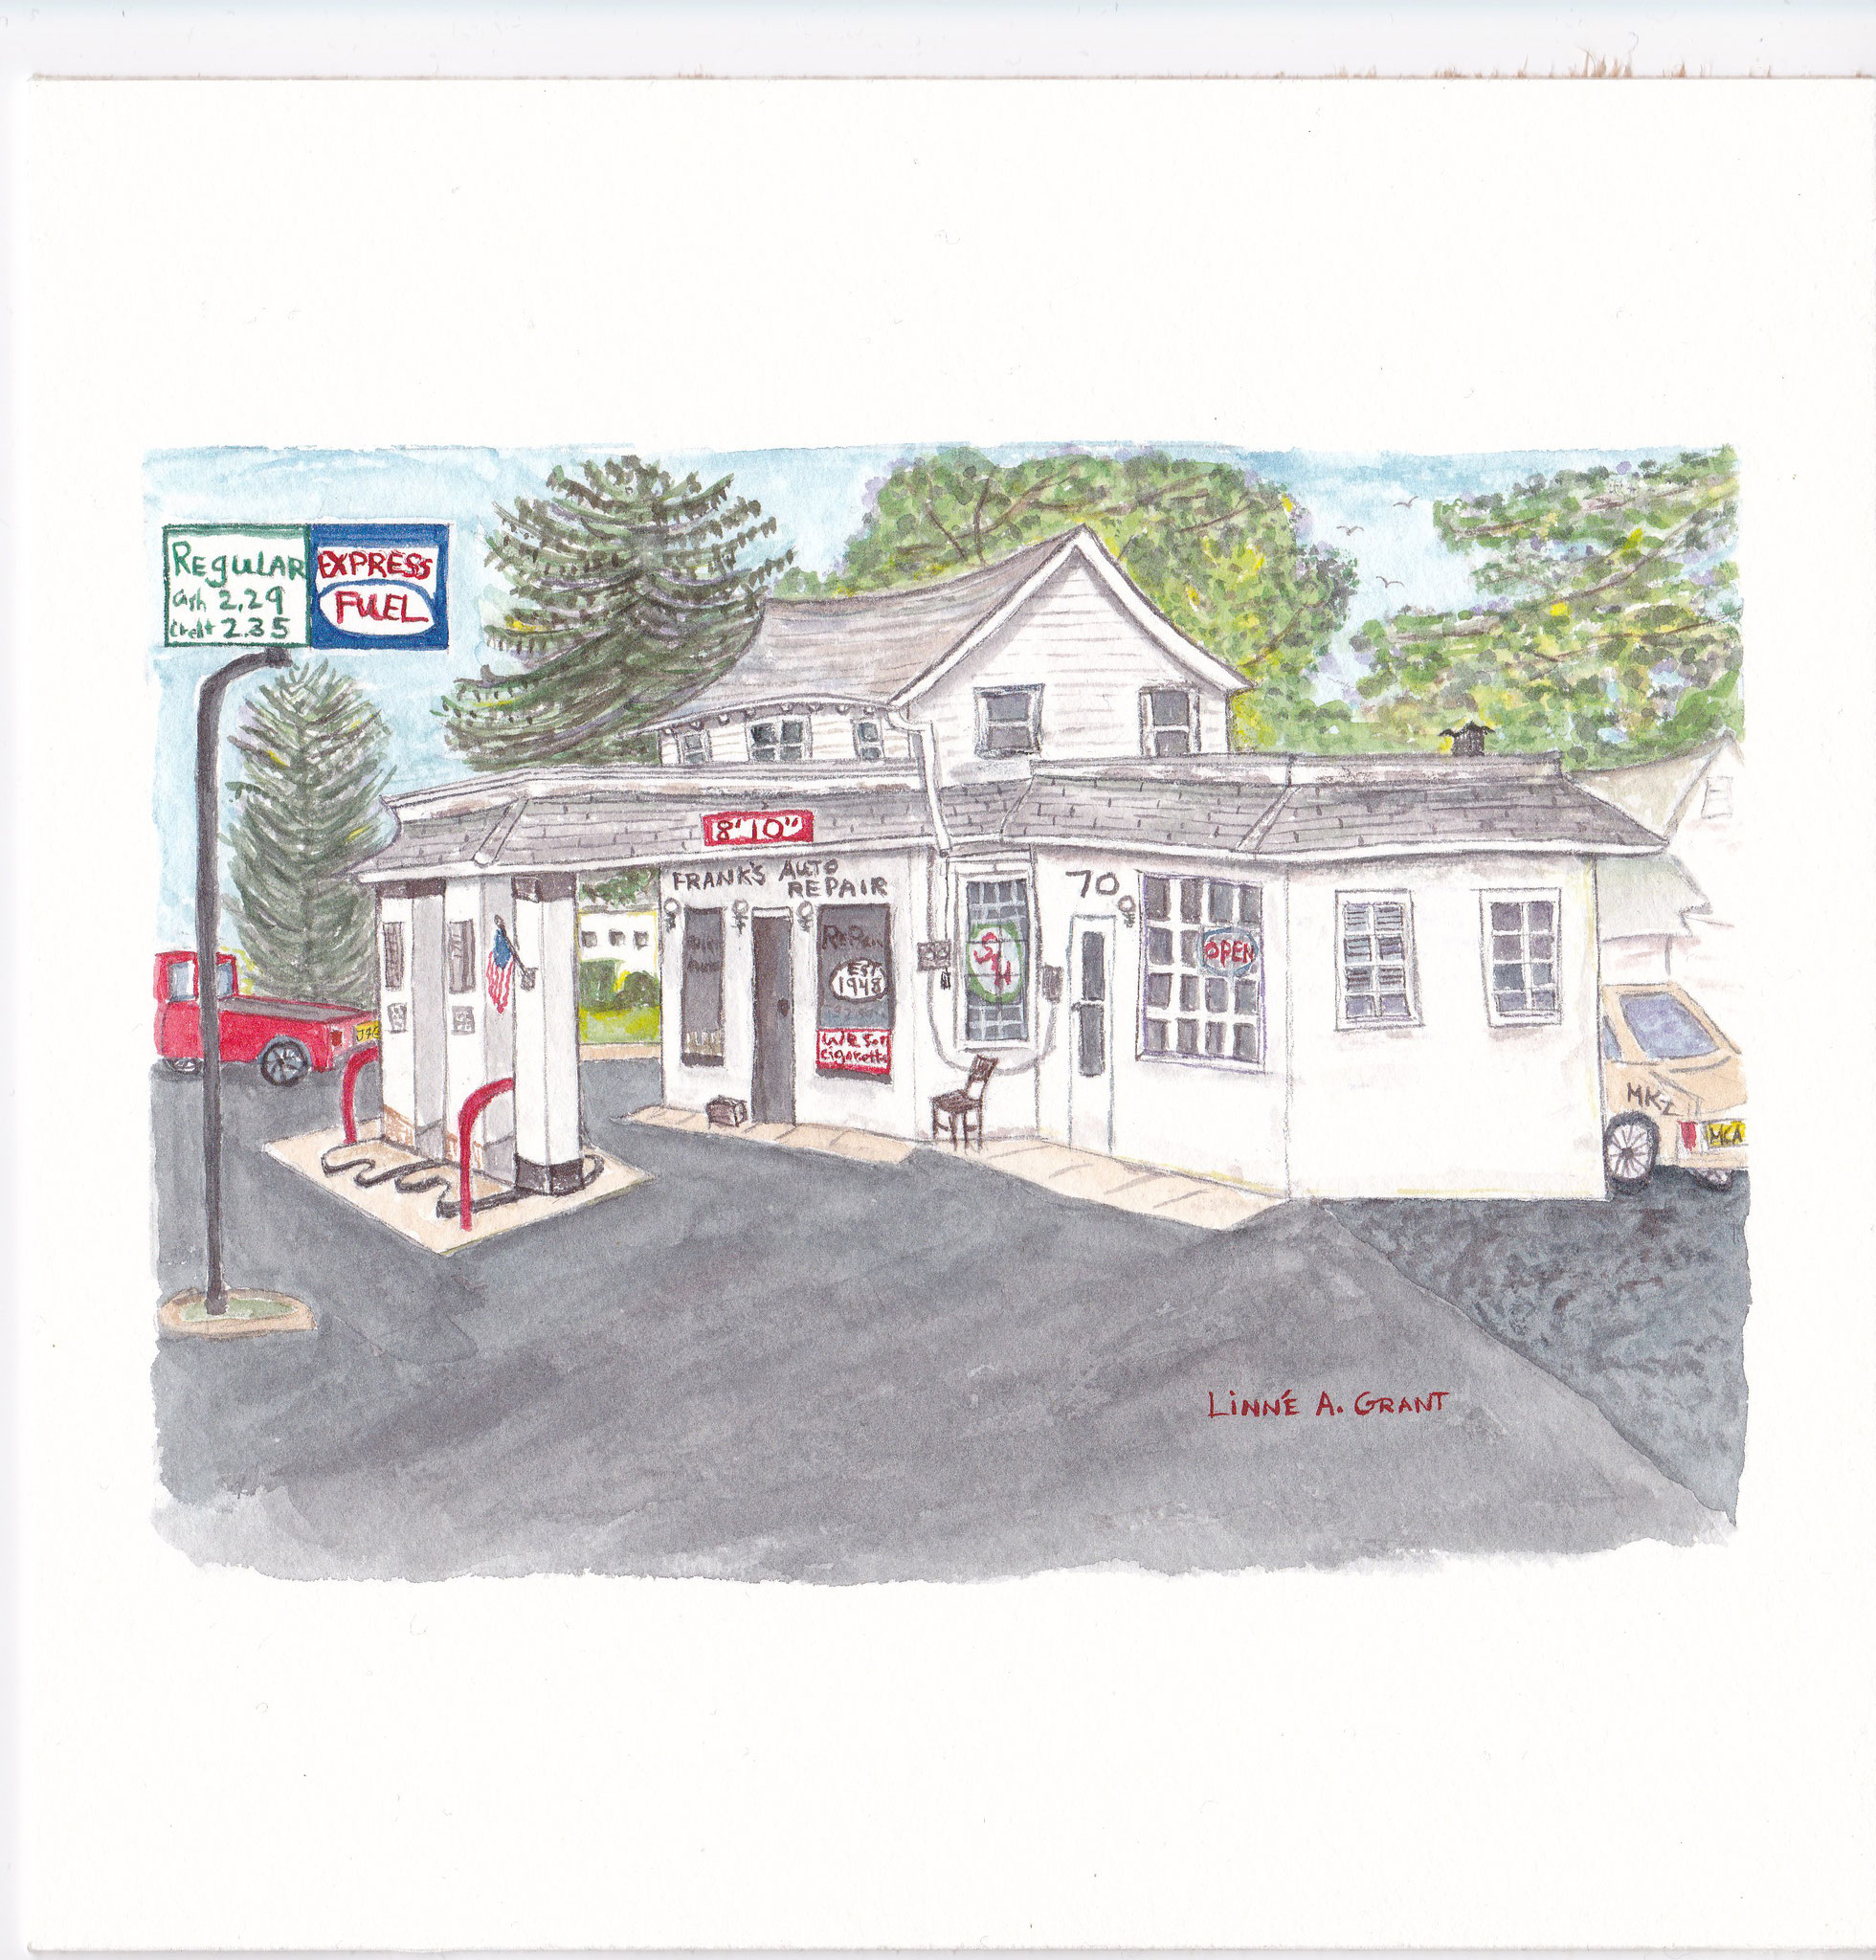 Frank's Auto Repair Englishtown NJ Watercolor by Linné Grant